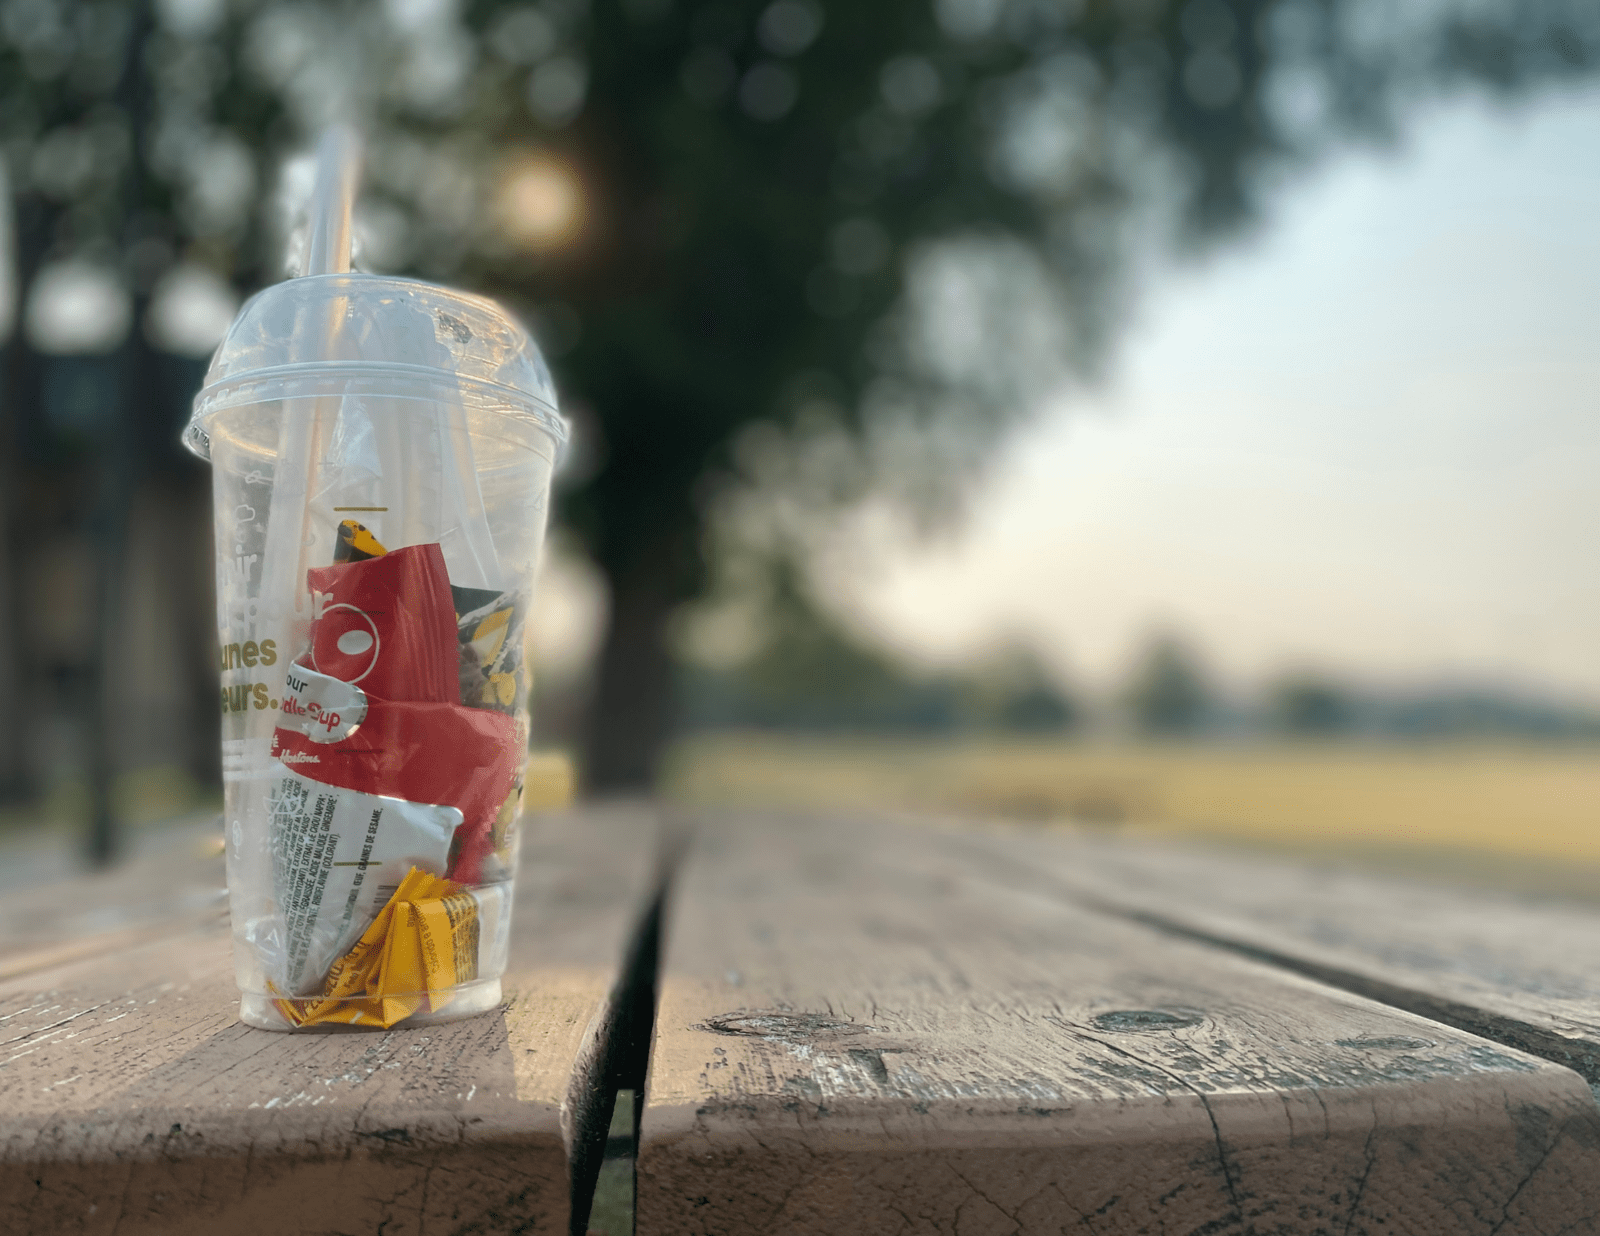 A clear to-go cup, filled with plastic wrappers and waste, sitting on top of a picnic table. Blurry trees in the background.